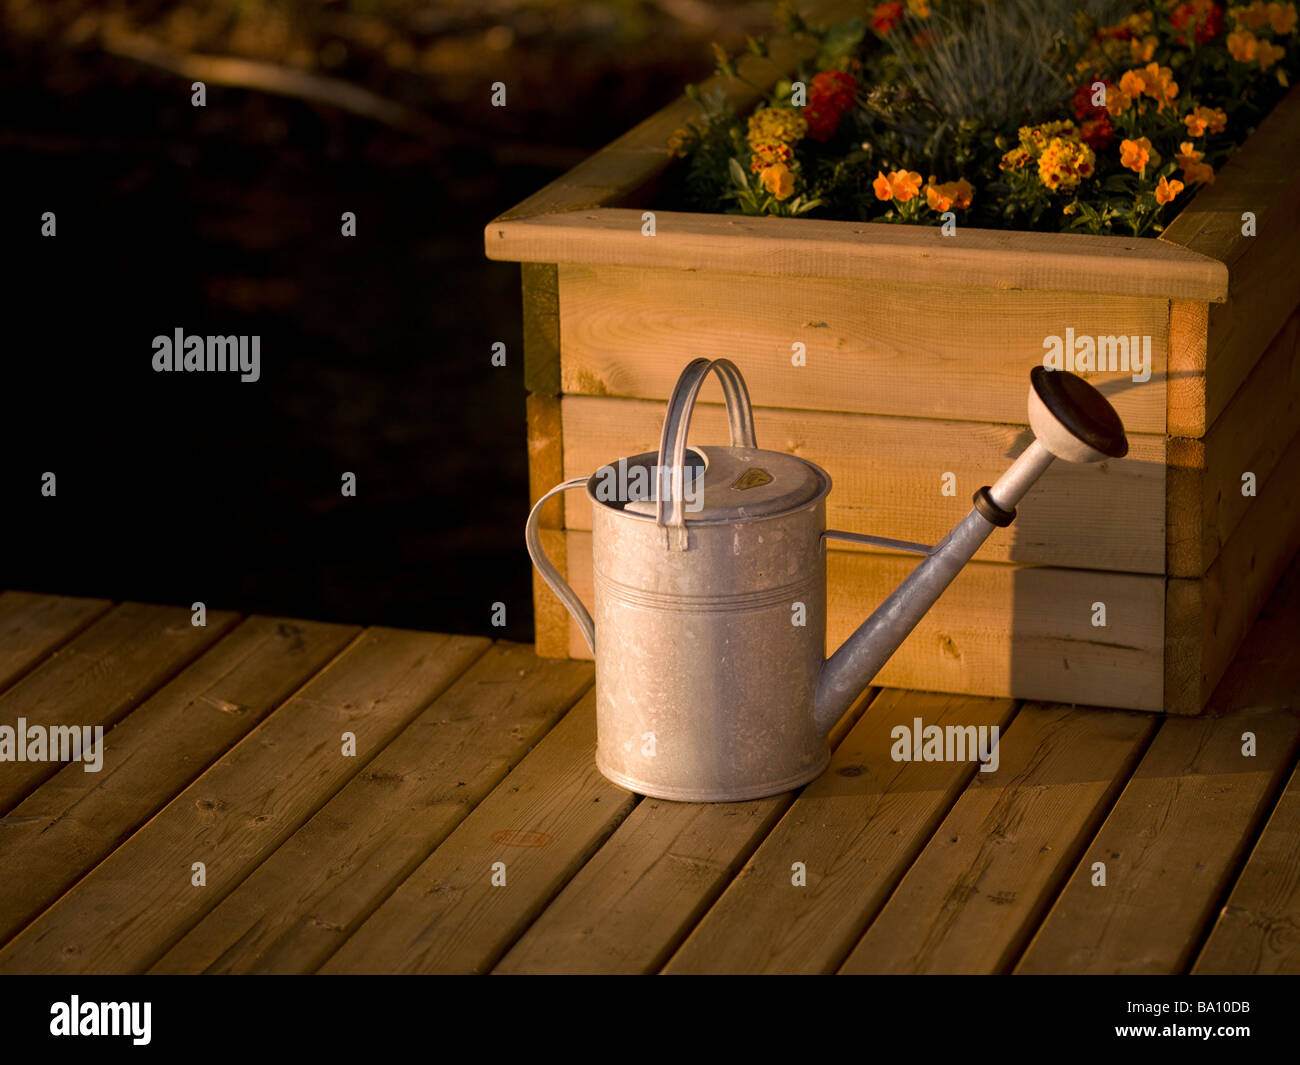 Watering can and flower box - Stock Image